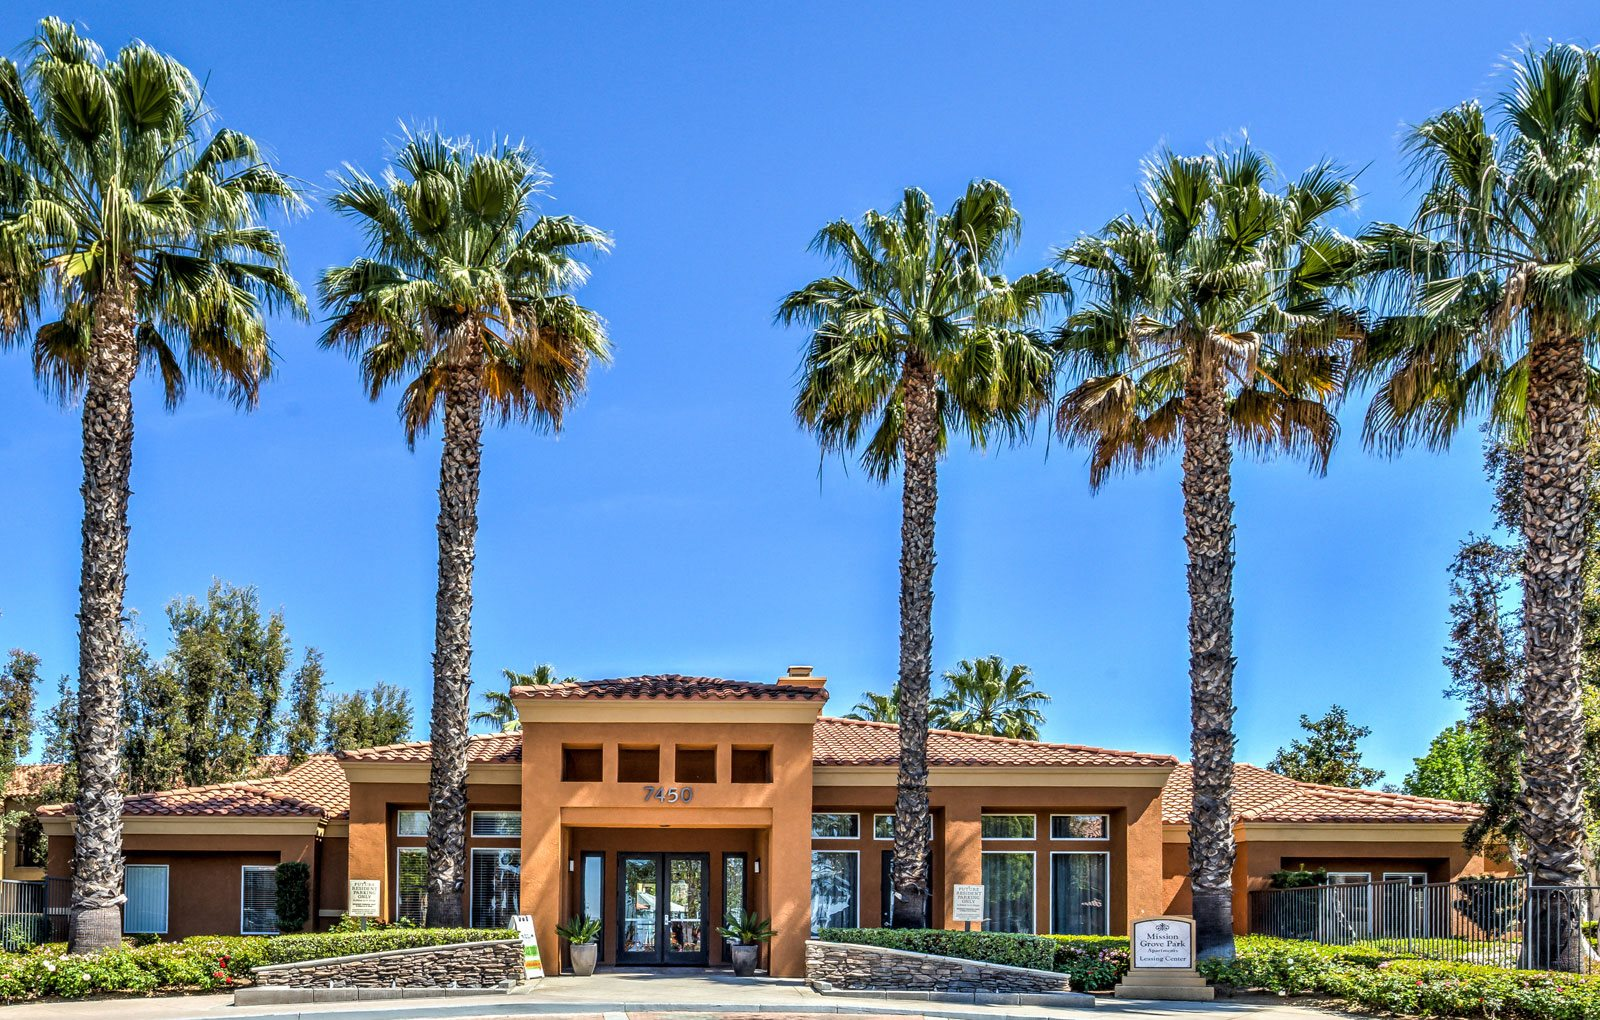 Riverside CA Apartments in Orange Crest | Mission Grove